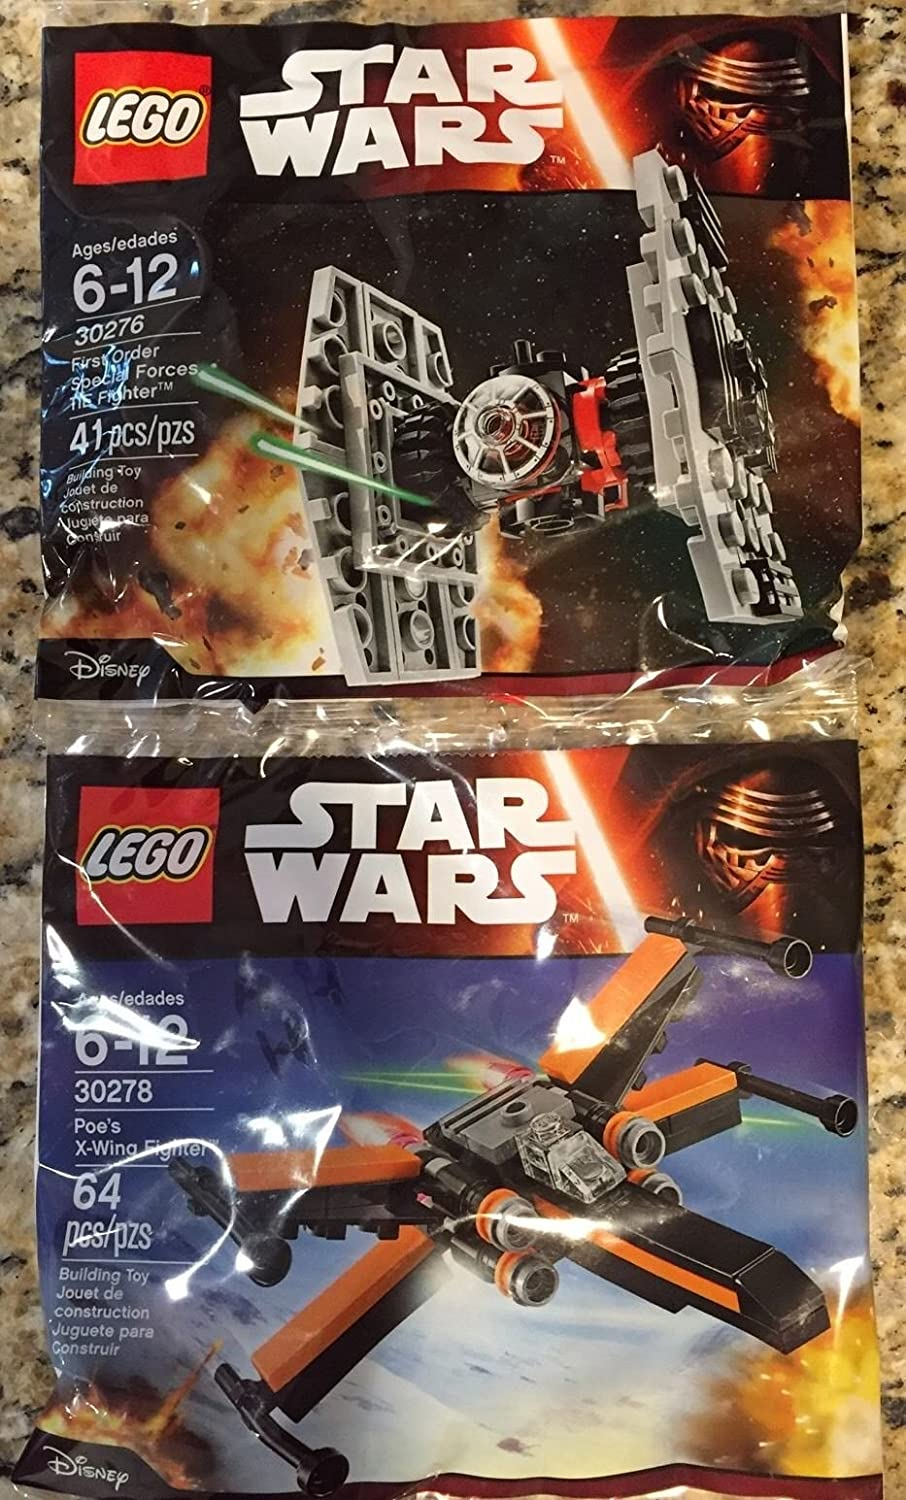 LEGO New Star Wars The Force Awakens 30278 Poe's X-Wing + 30276 TIE Fighter